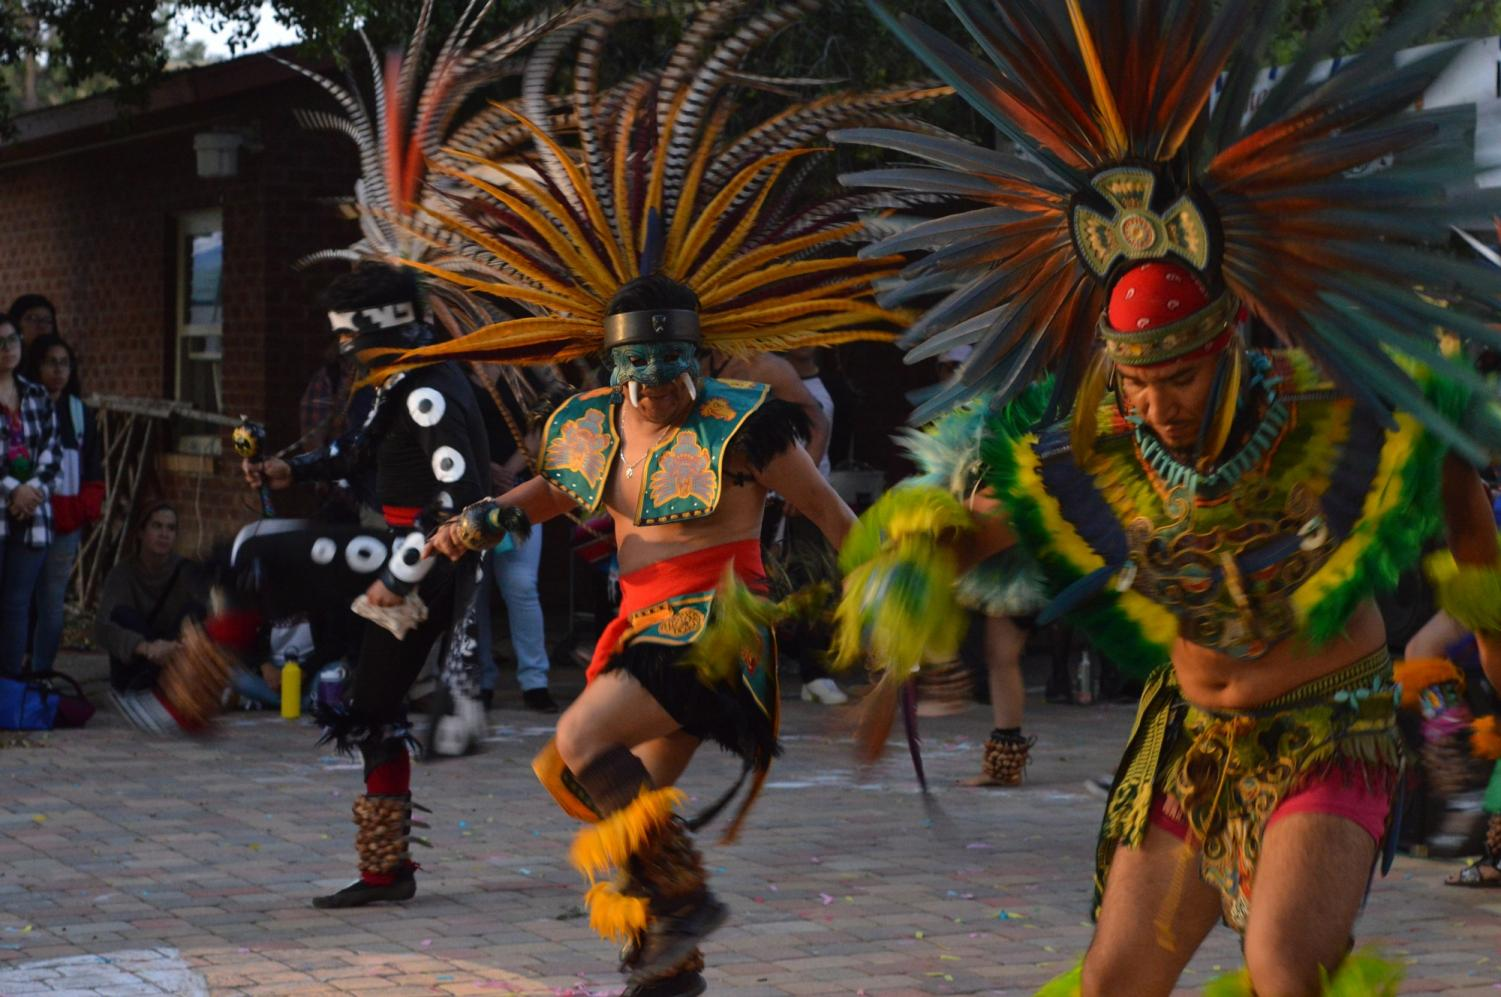 Danza Cuatemo dancers perform a dance in celebration of mother earth at the Chicano house, for Indigenous People's Day on October 14th 2019 Photo credit: Geovanni Botticella